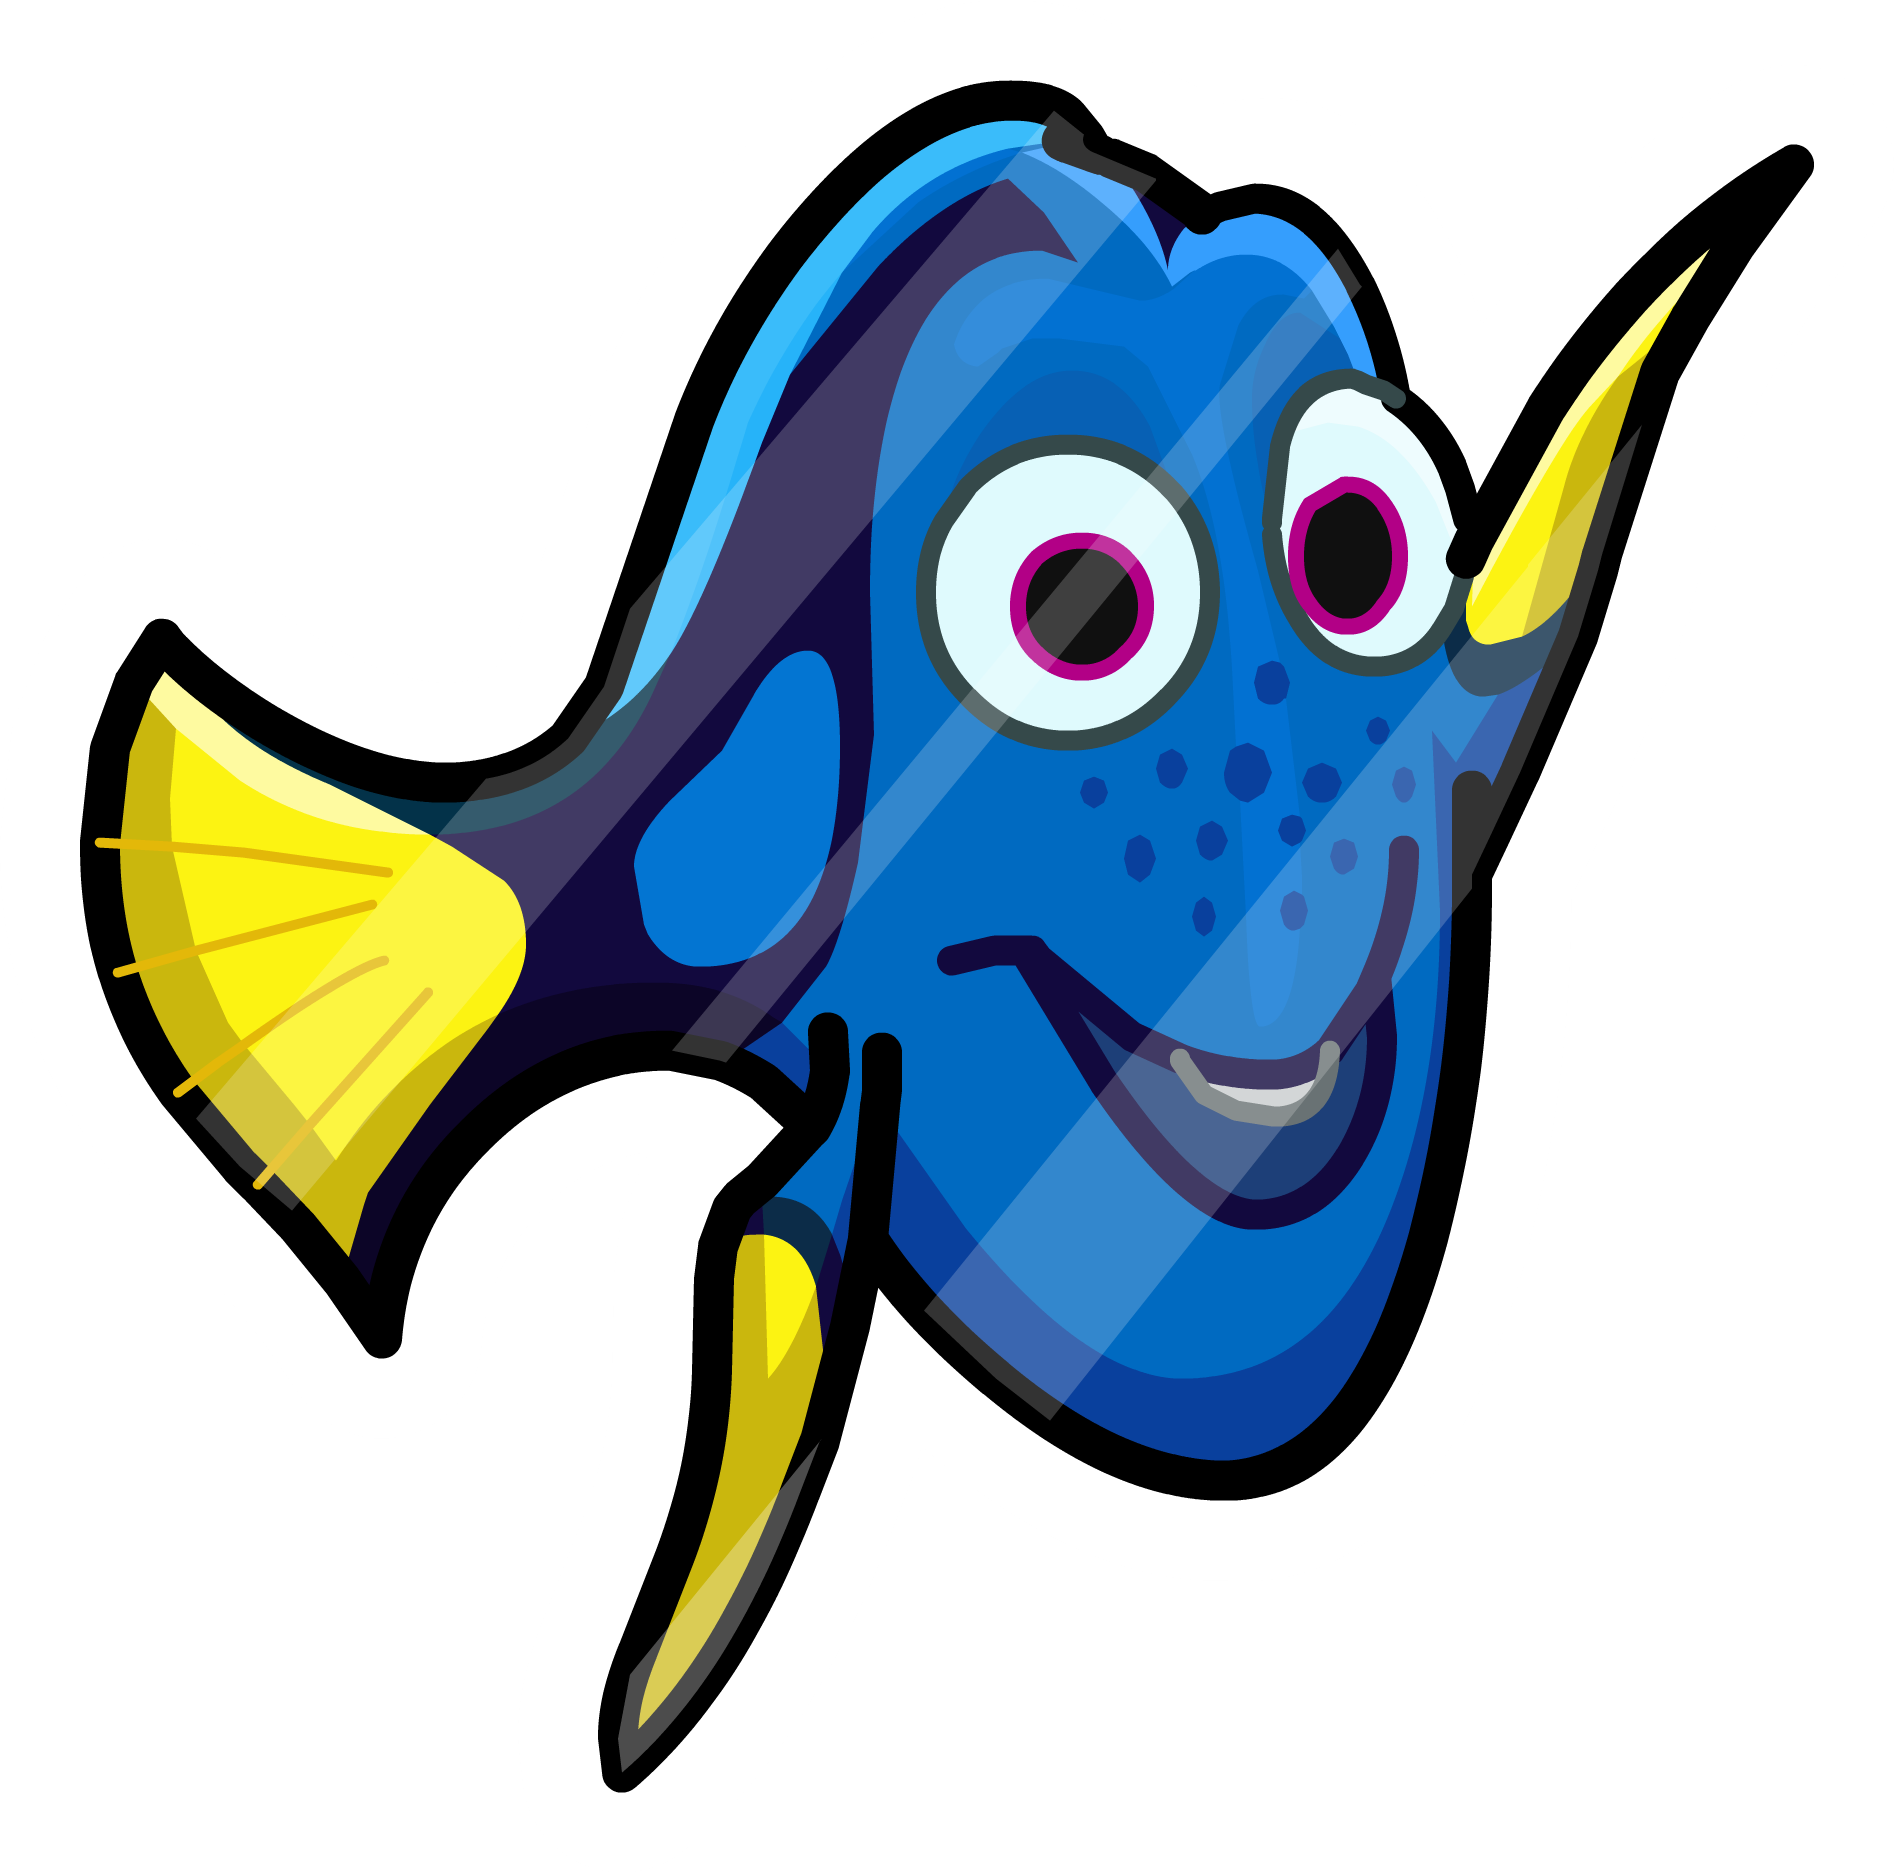 Bailey from dory fish clipart png Finding Dory Party interface | Club Penguin Wiki | FANDOM powered by ... png